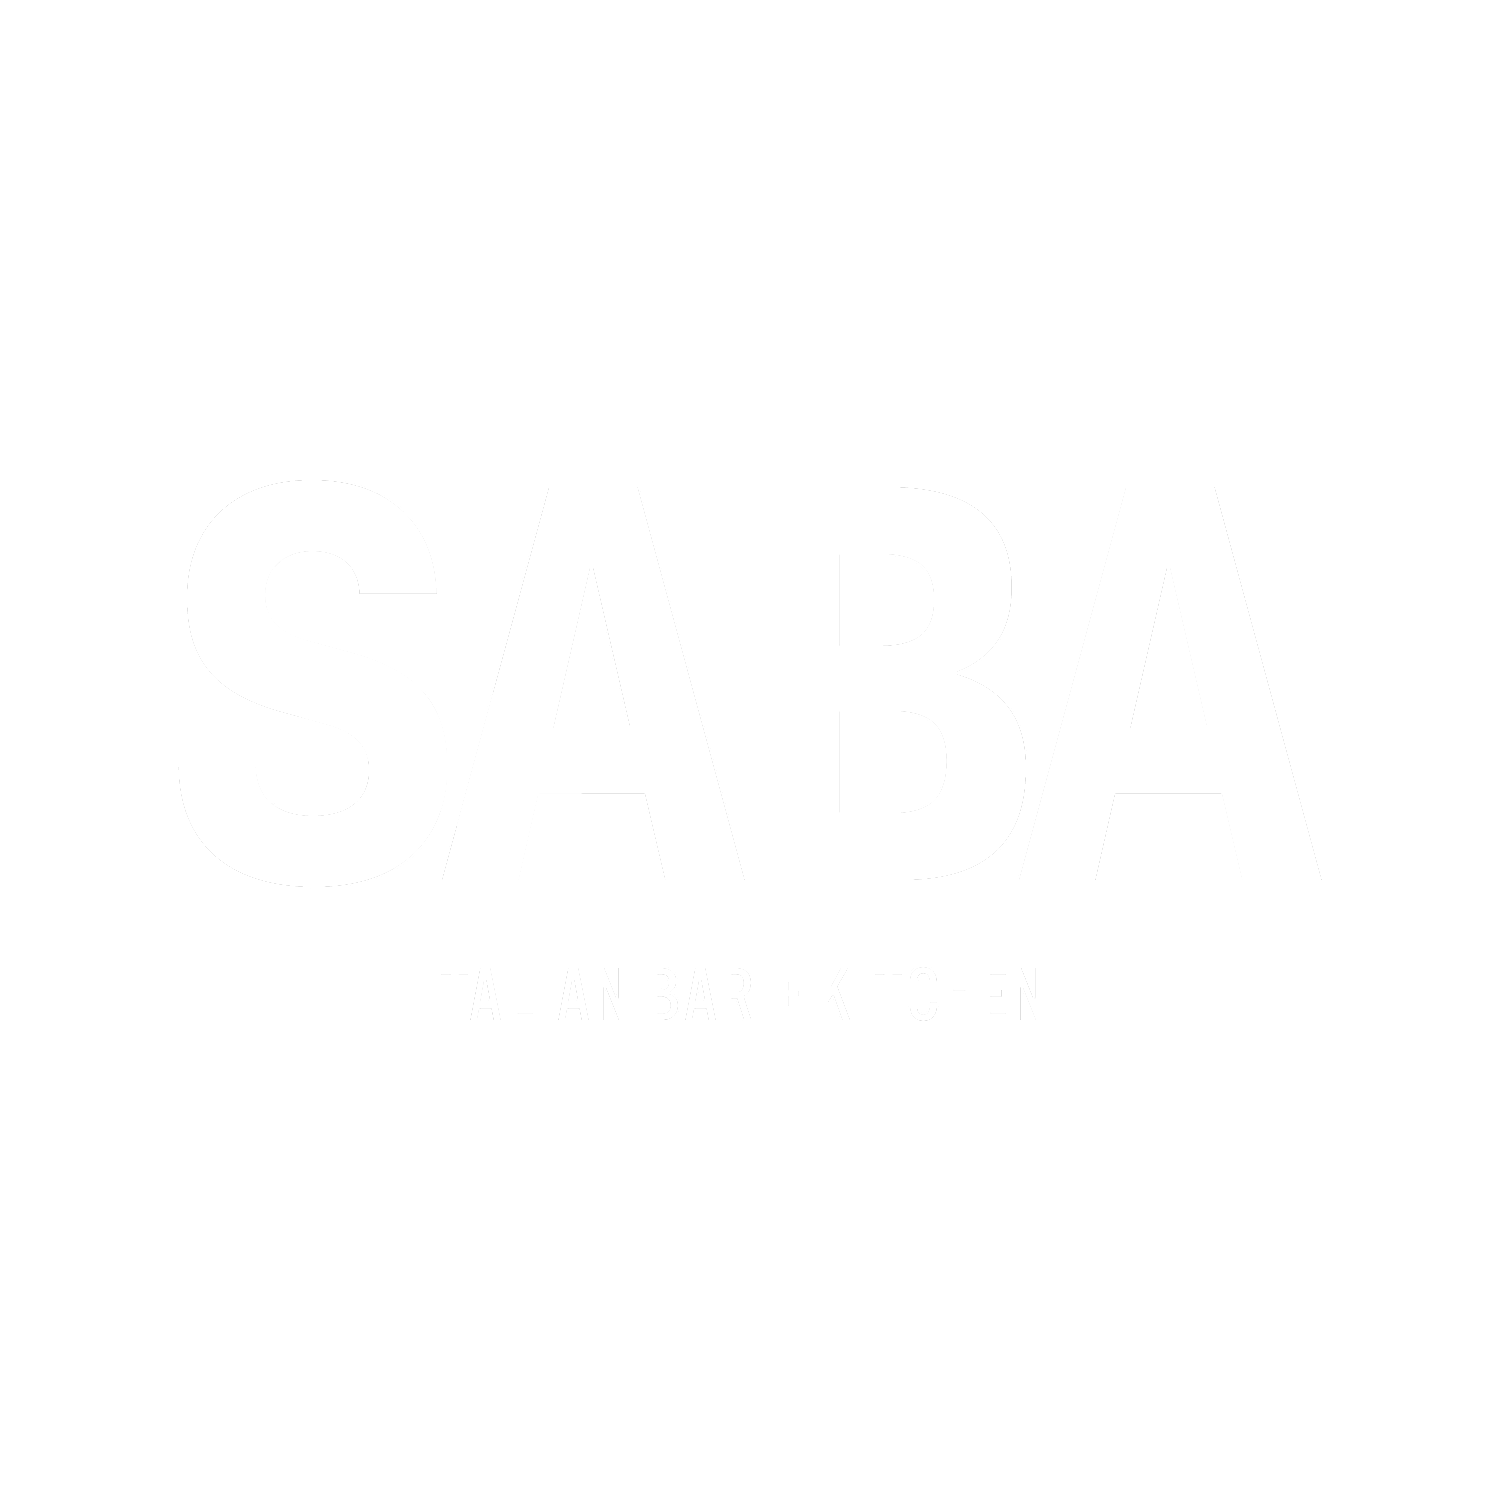 SABA Italian Bar + Kitchen